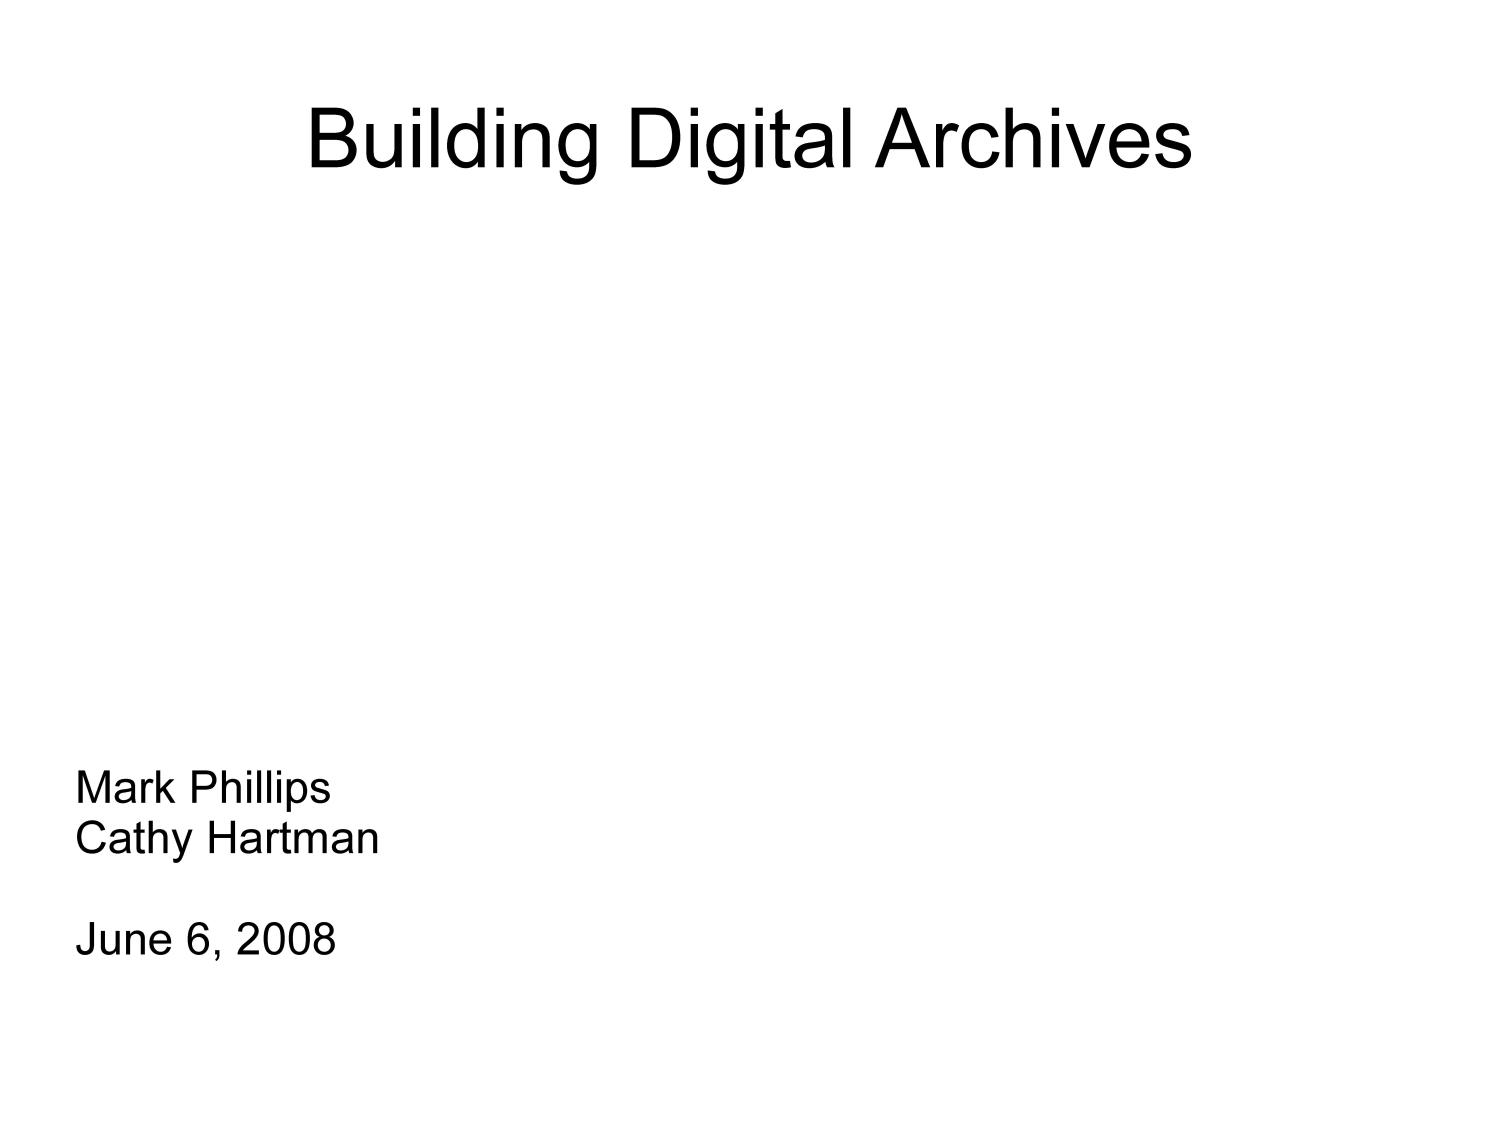 Building Digital Archives                                                                                                      [Sequence #]: 1 of 24